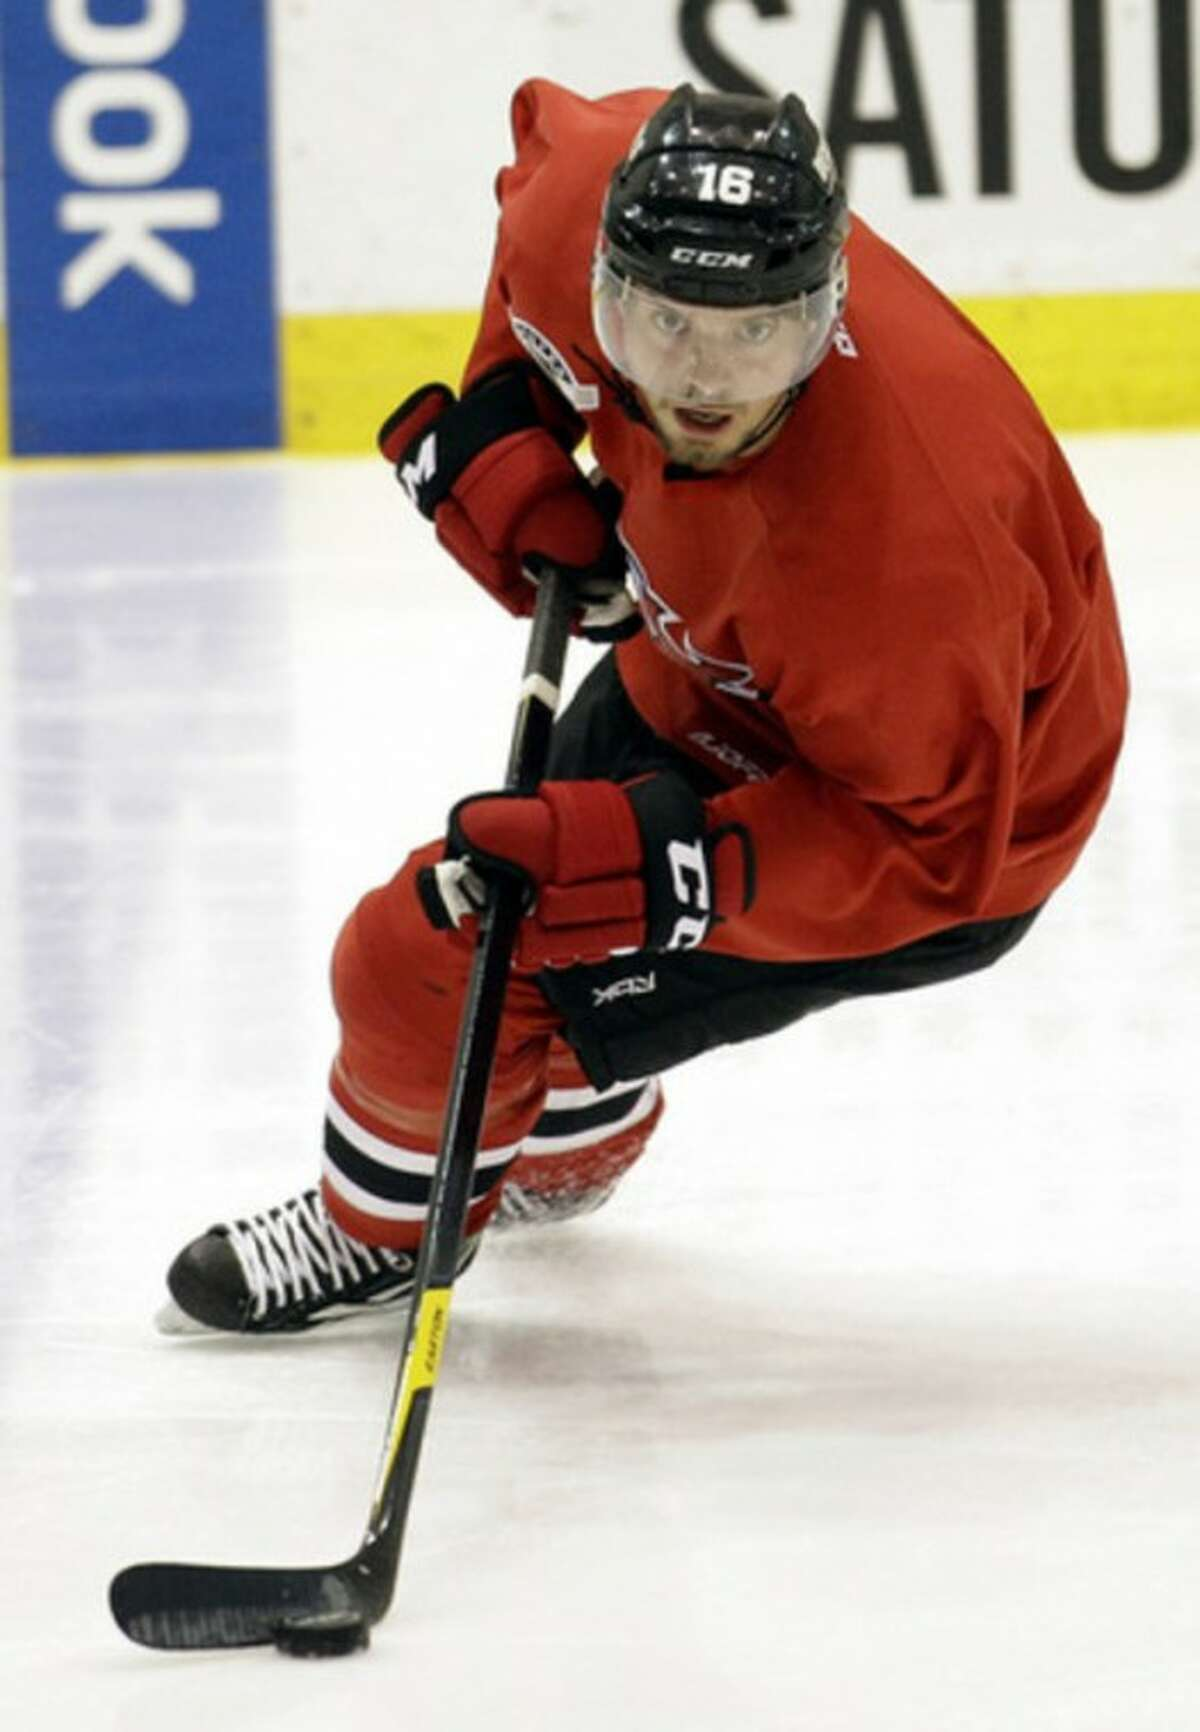 New Jersey Devils' Jacob Josefson, of Sweden, skates at the team's practice rink, Tuesday, May 15, 2012, in Newark, N.J. A day earlier, the Devils lost 3-0 to the New York Rangers in Game 1 of the NHL hockey Stanley Cup Eastern Conference final playoff series. Game 2 is Wednesday in New York. (AP Photo/Julio Cortez)